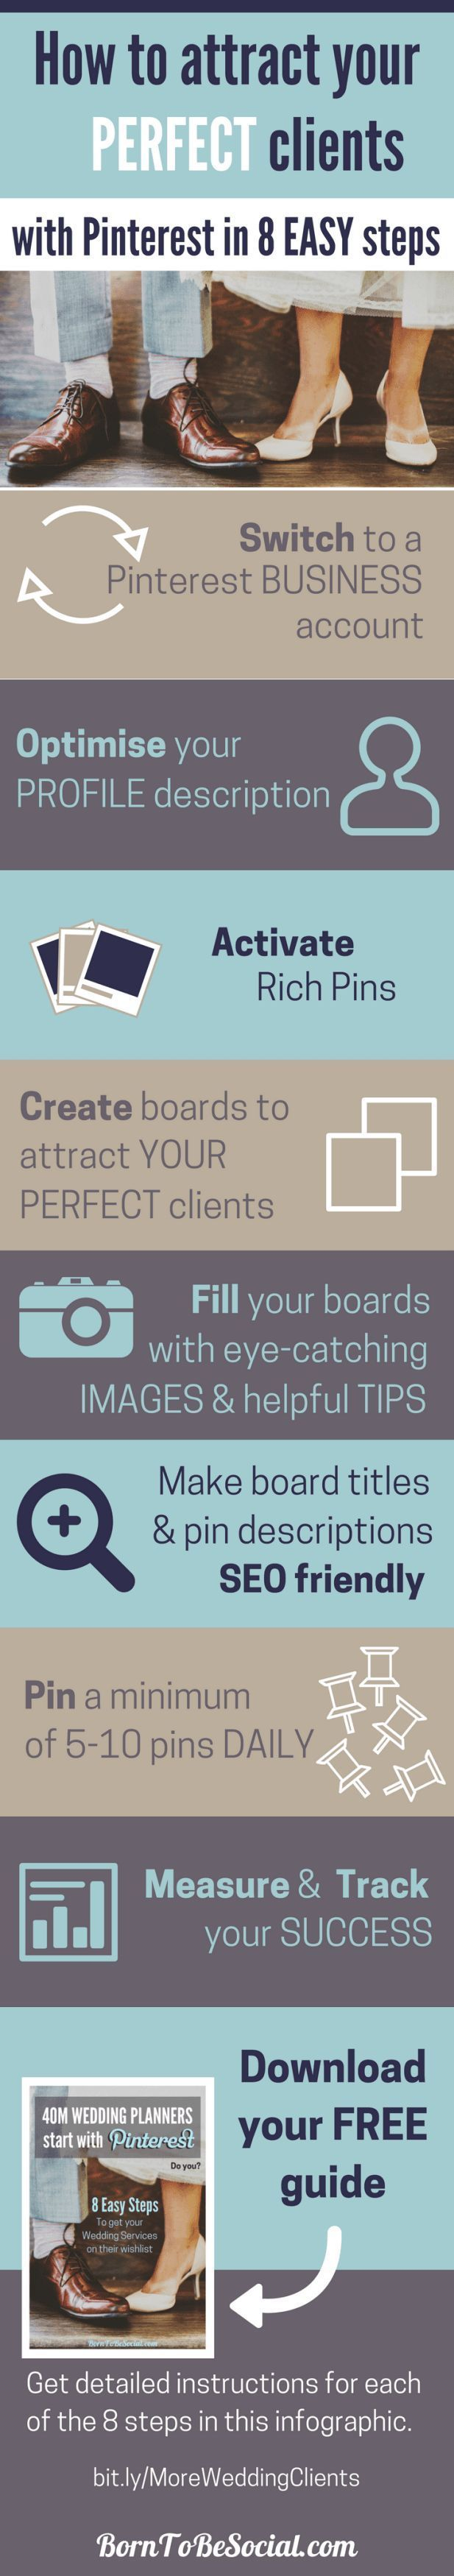 This Is How To Get More Wedding Clients In 8 Easy Steps Pinterest Marketing Infographic And Planners